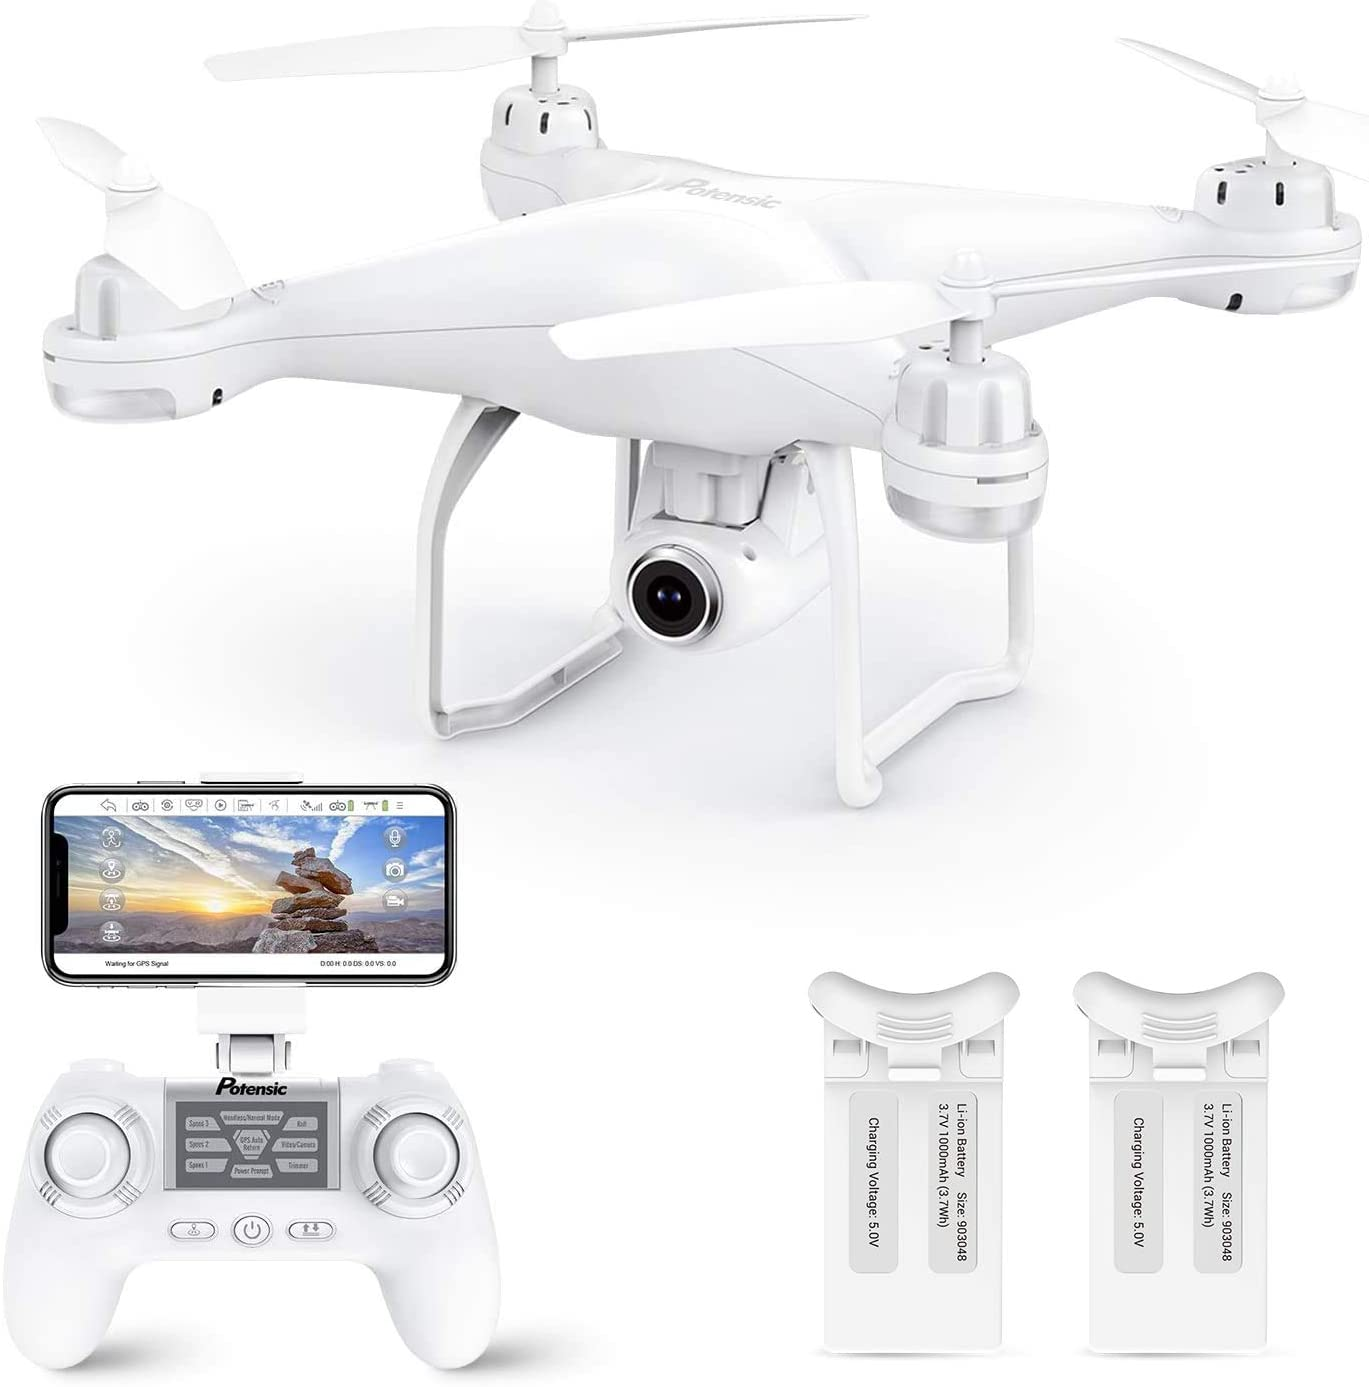 This is an image of a white drone with camera and its control.